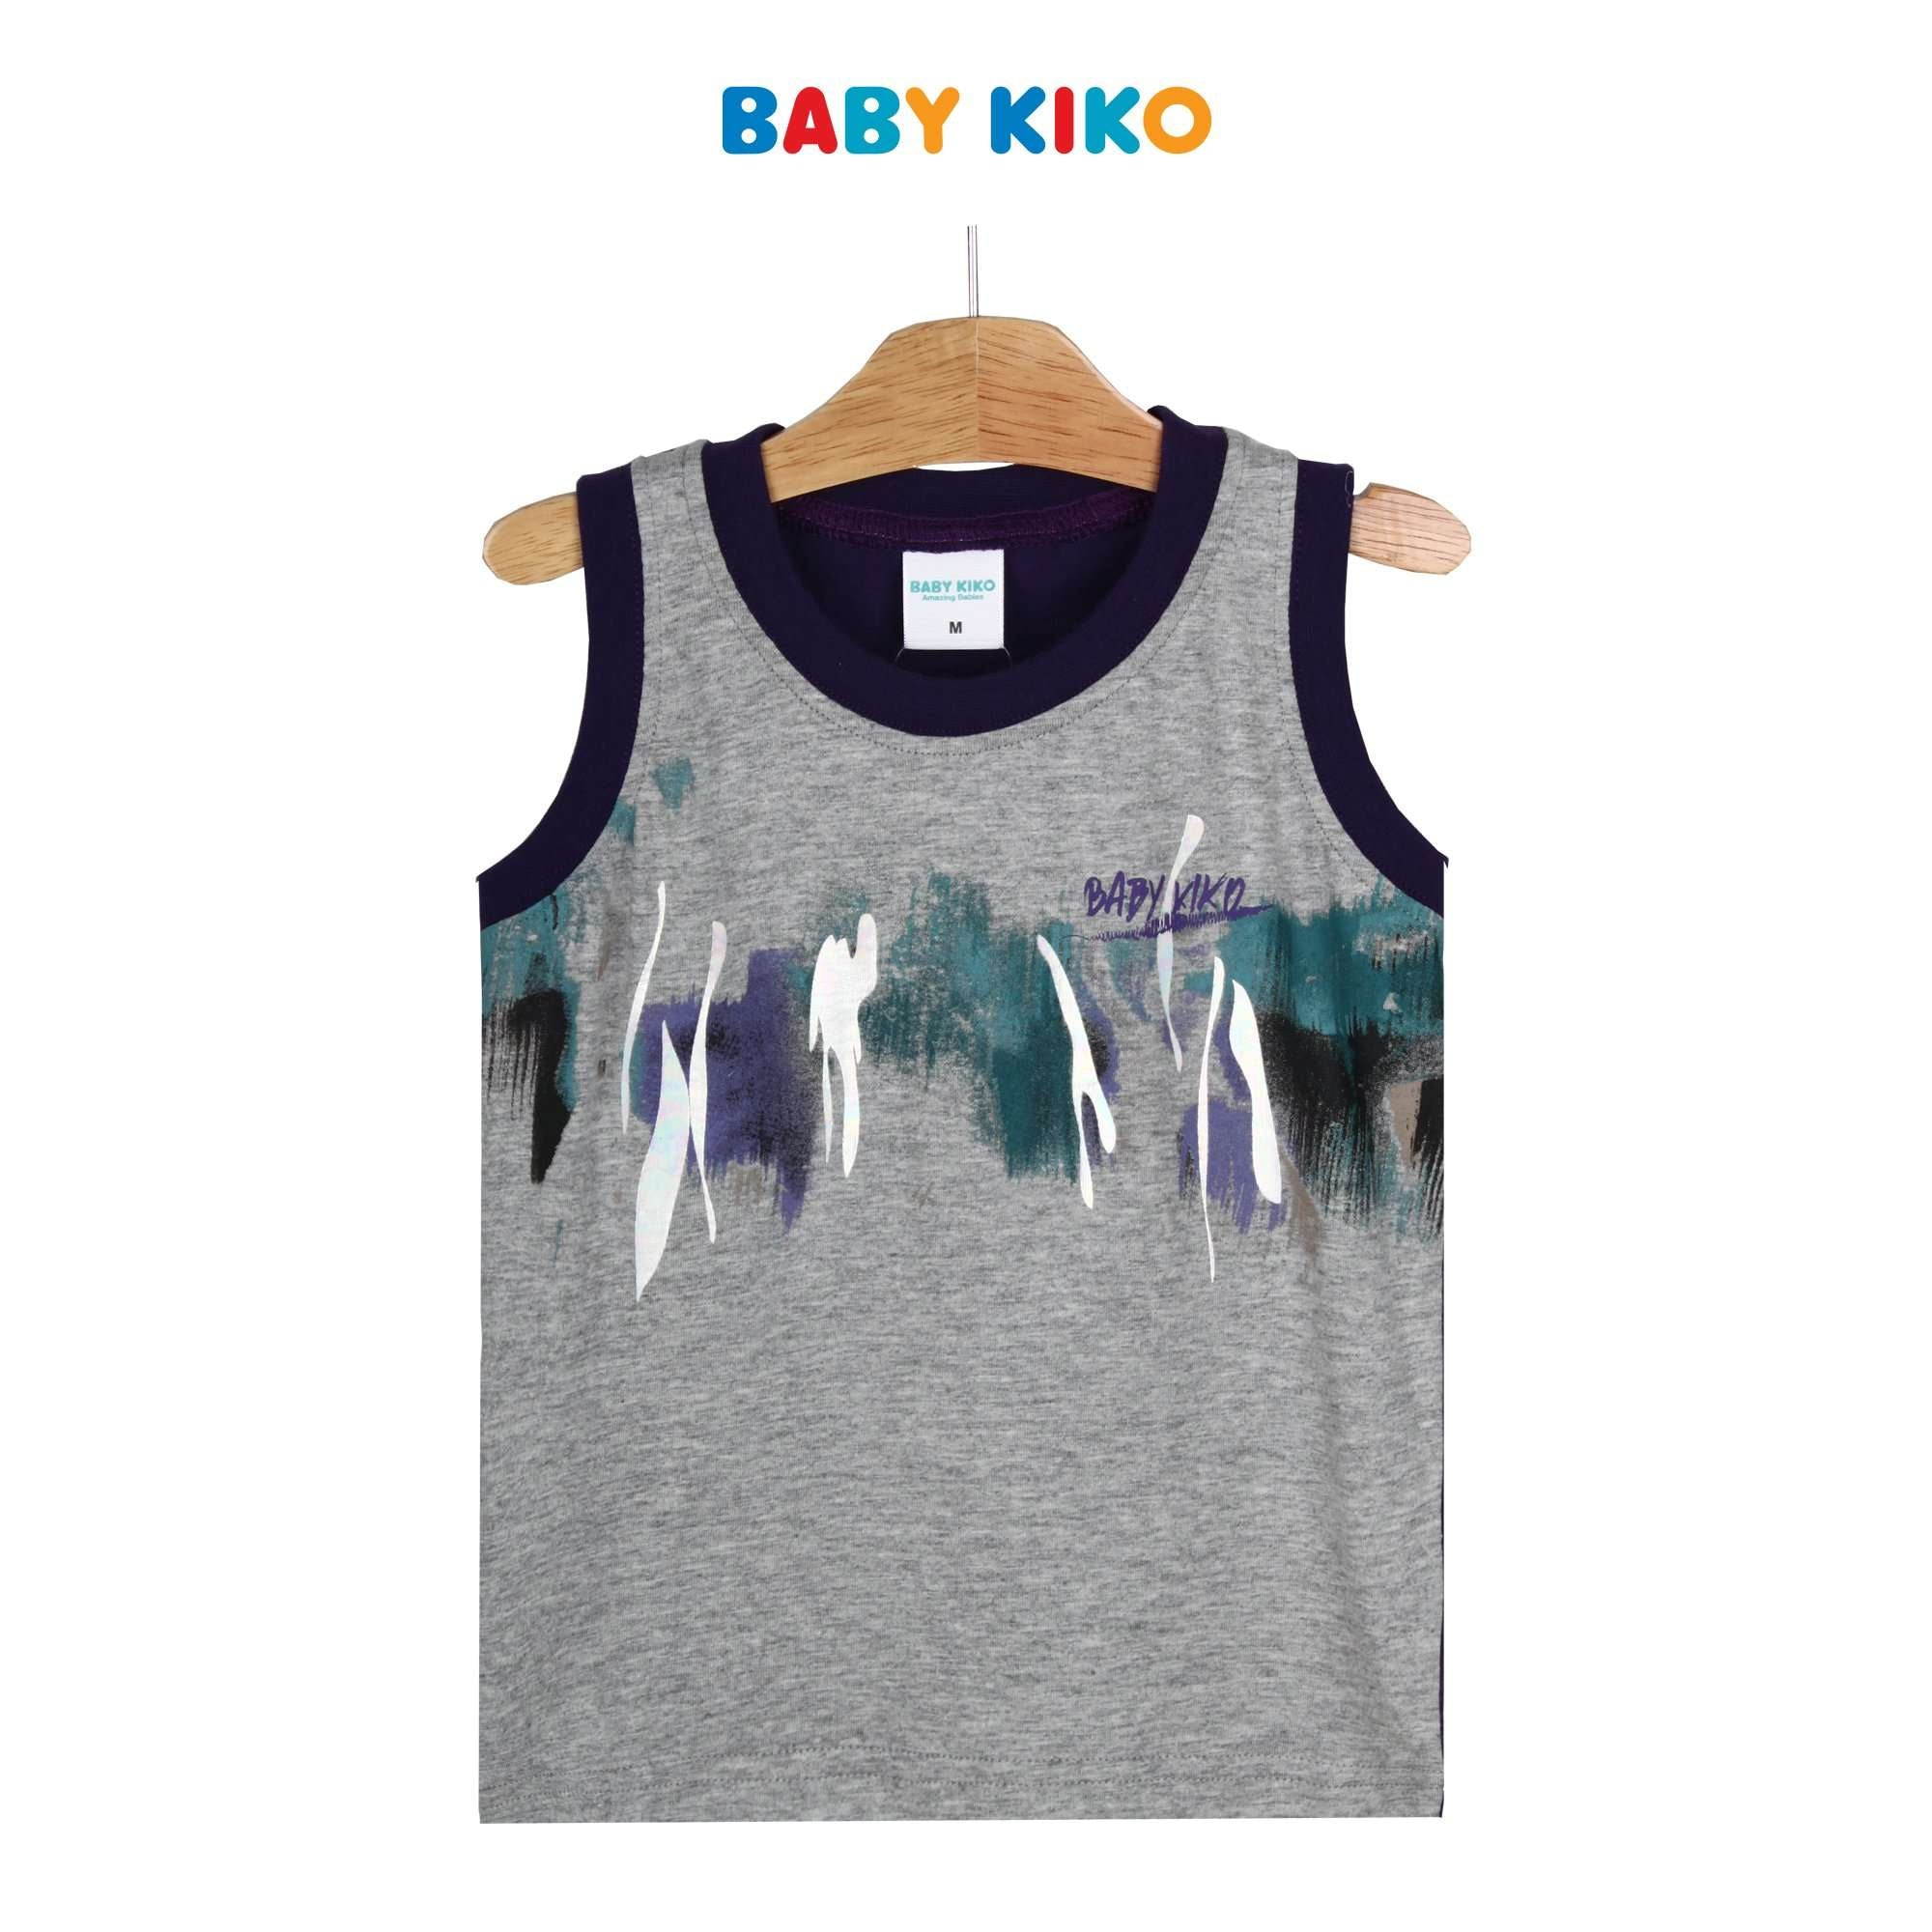 Baby KIKO Toddler Boy Sleeveless Tee - Purple Reign 335107-101 : Buy Baby KIKO online at CMG.MY